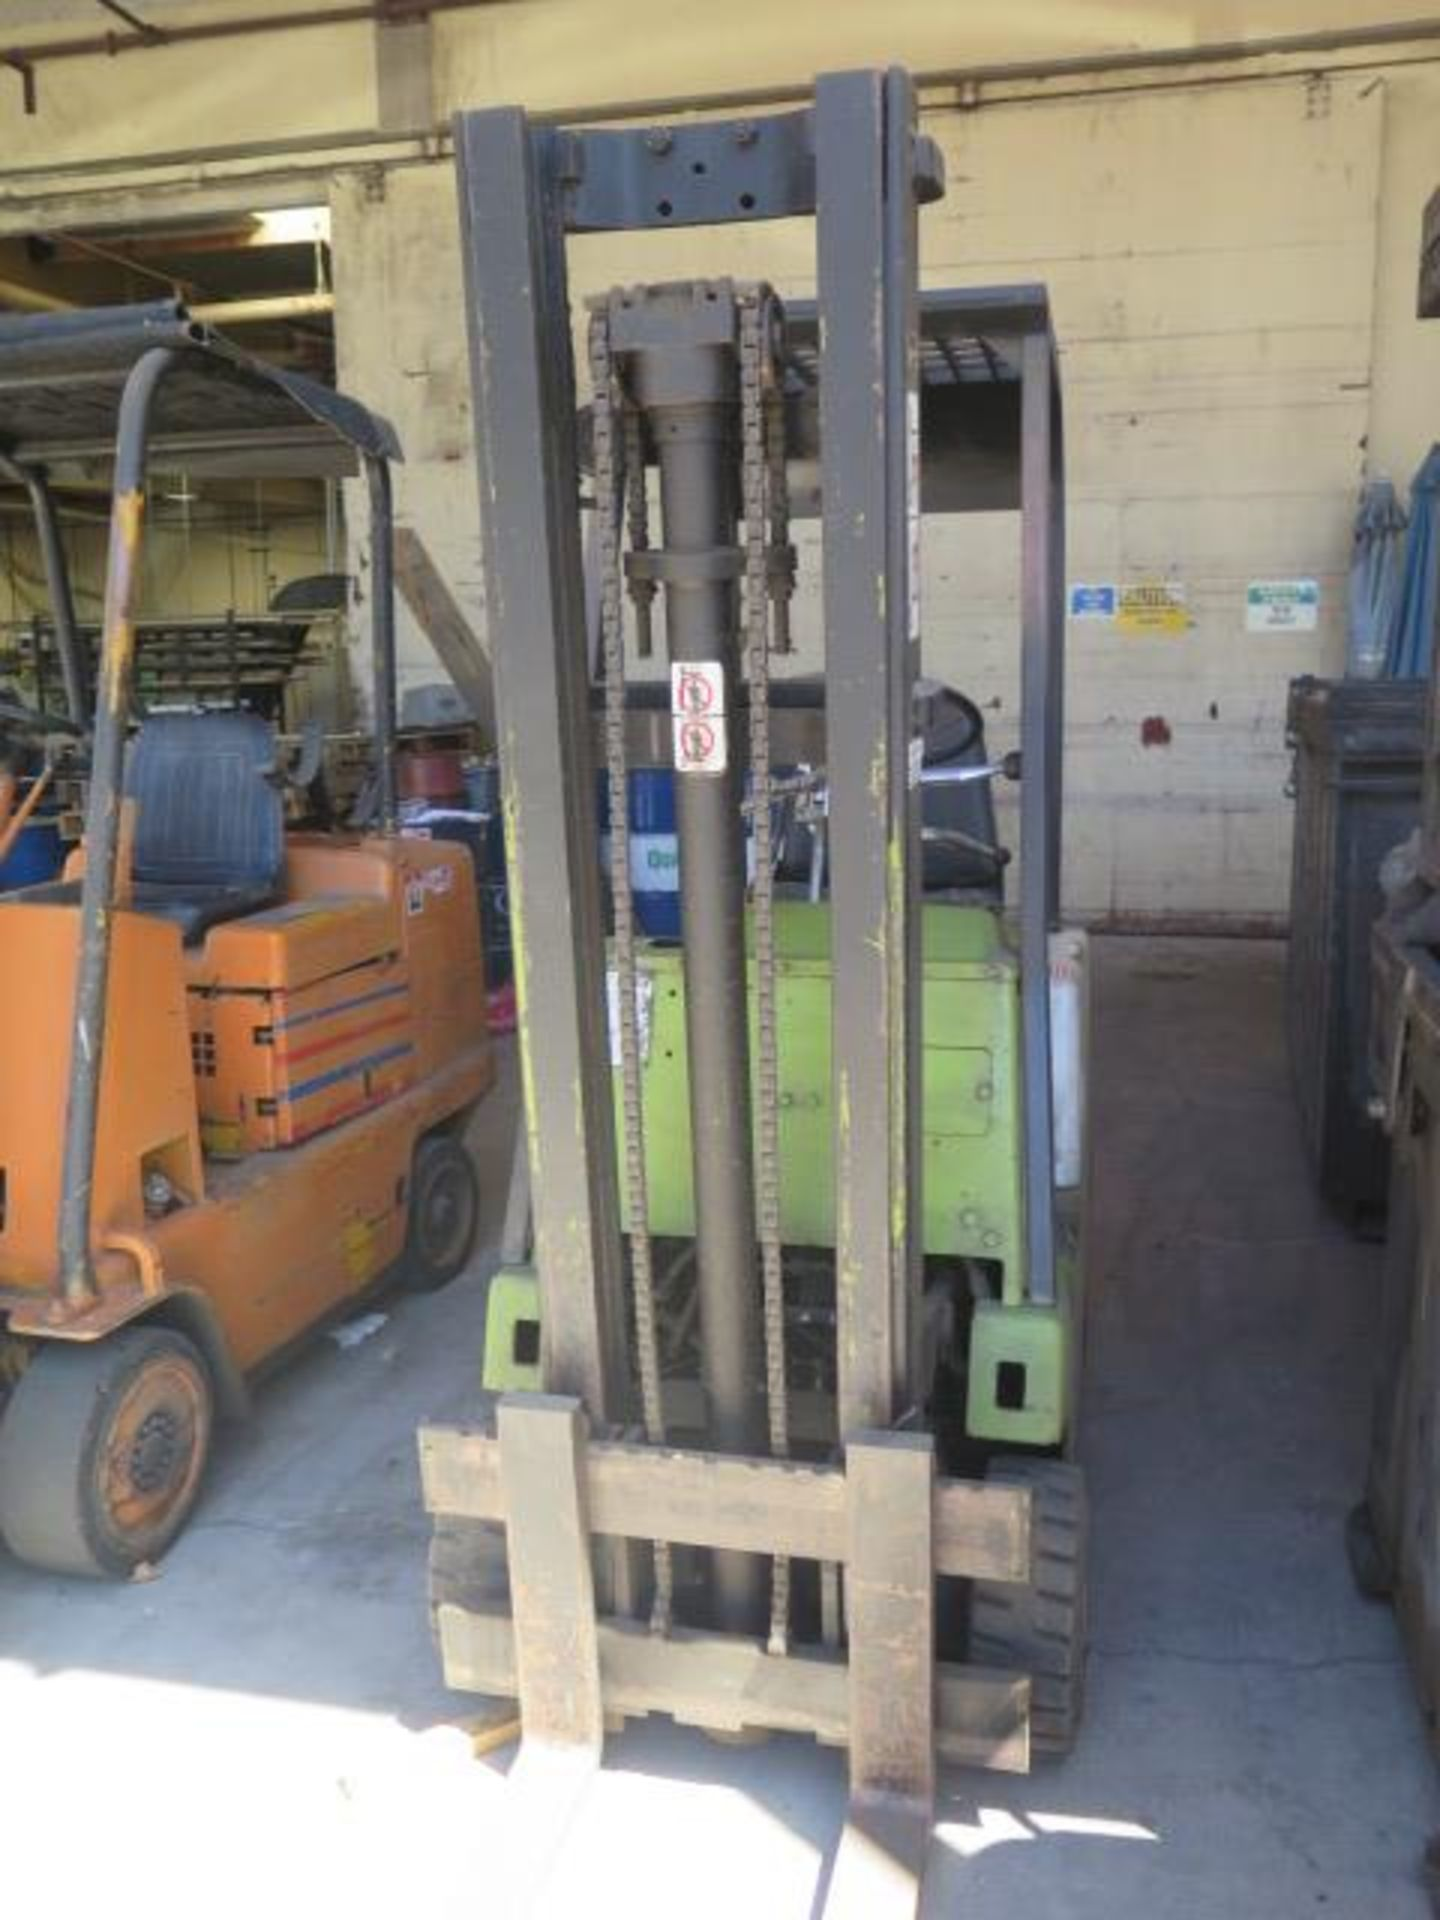 """Clark 2000 Lb Cap LPG Forklift w/ 2-Stage 130"""" Lift Height, (Condition Unknown), SOLD AS IS - Image 4 of 12"""